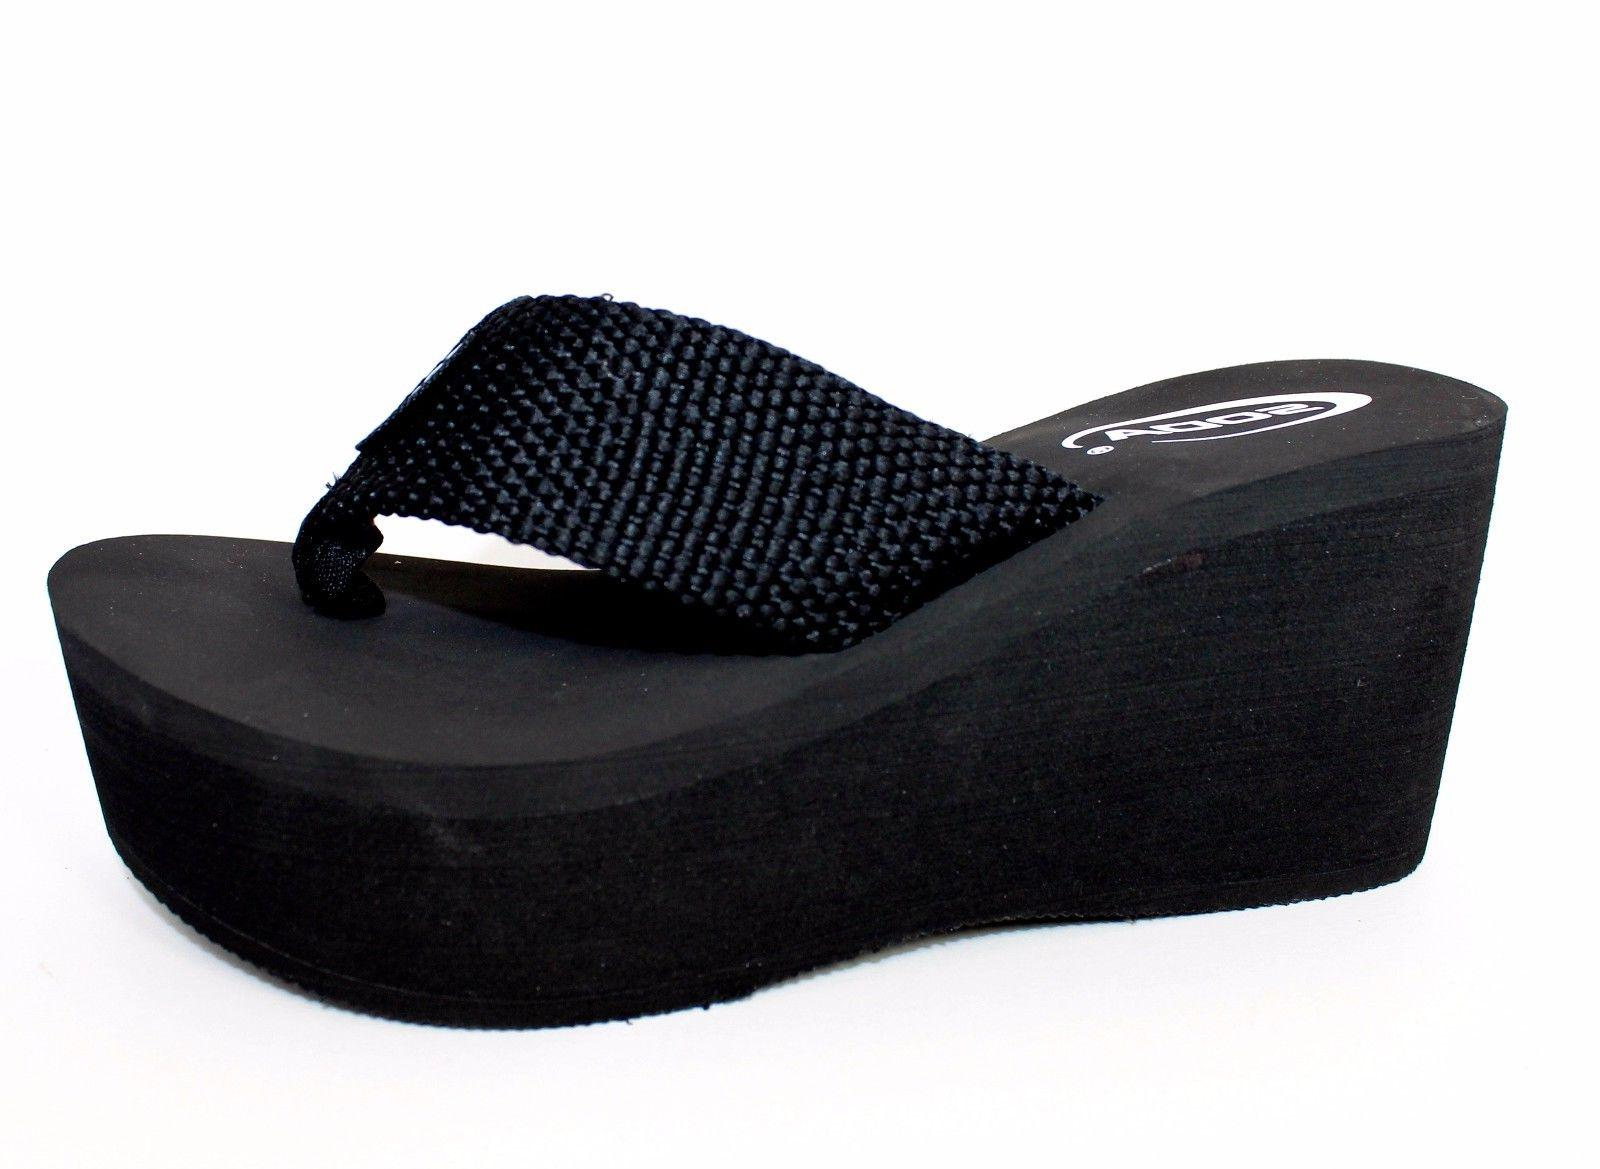 "WEDGE EVA 3"" WEBBING PLATFORM THONG FLIP FLOPS SANDALS SODA"